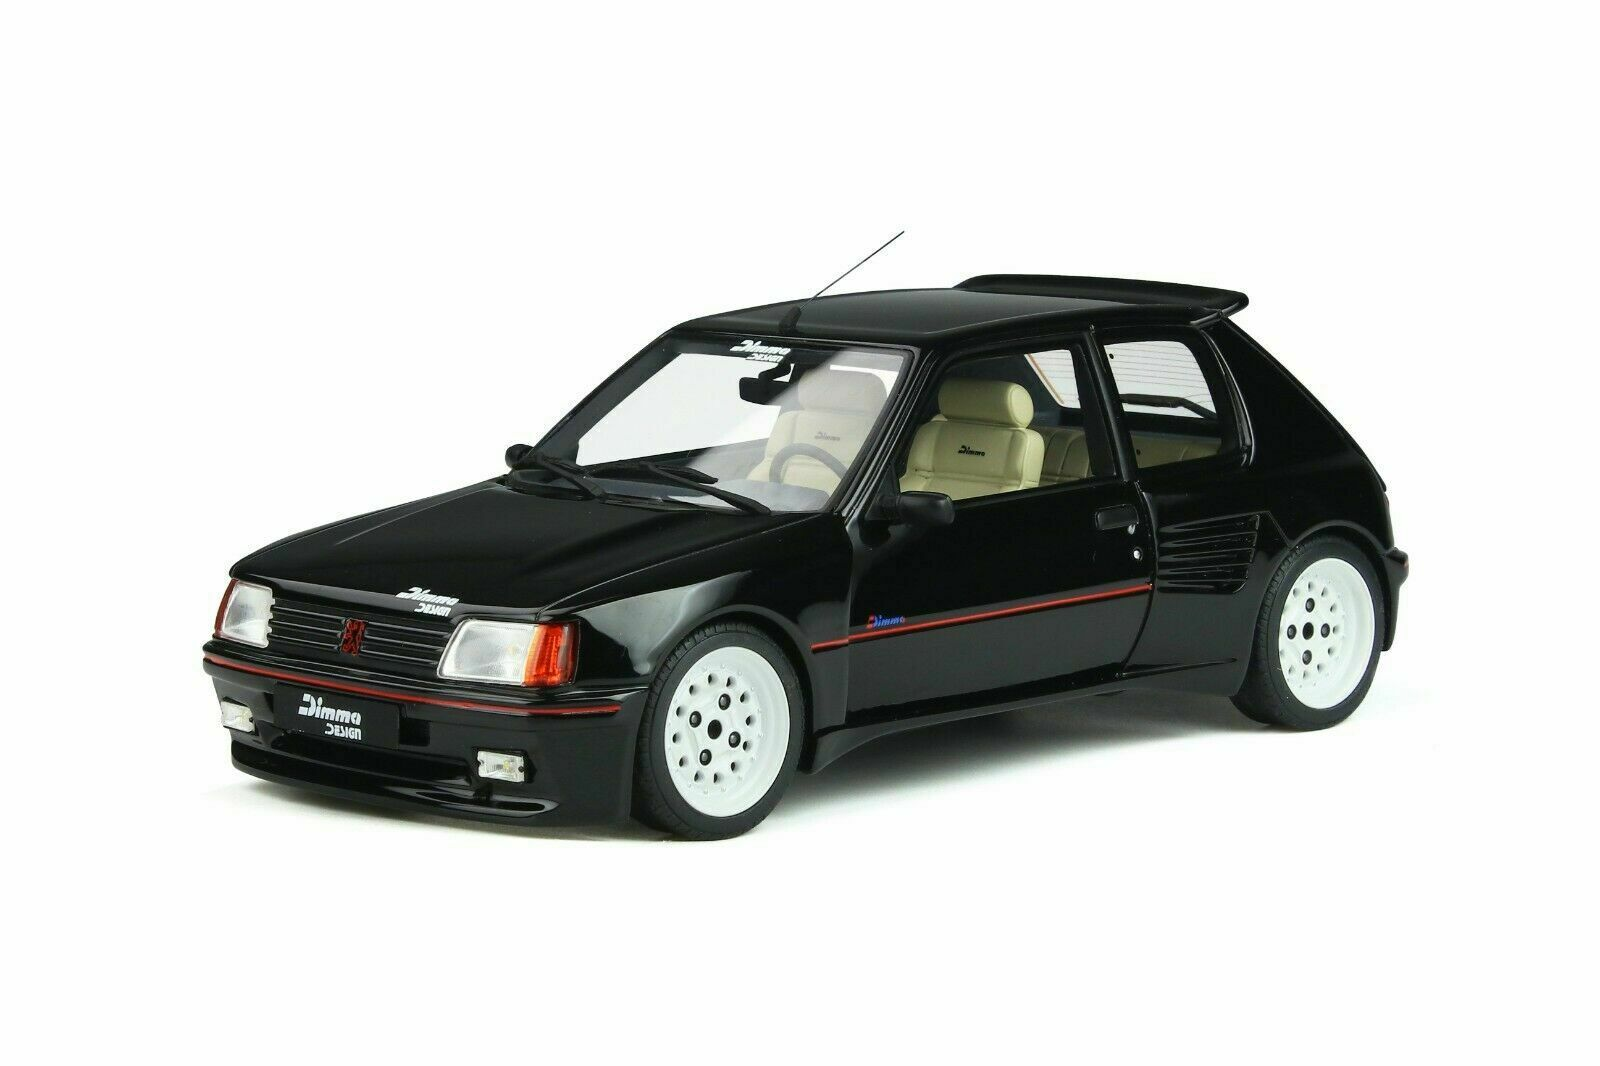 Peugeot 205 Cti Ottomobile Ot600 1 18th Scale For Sale Online Ebay